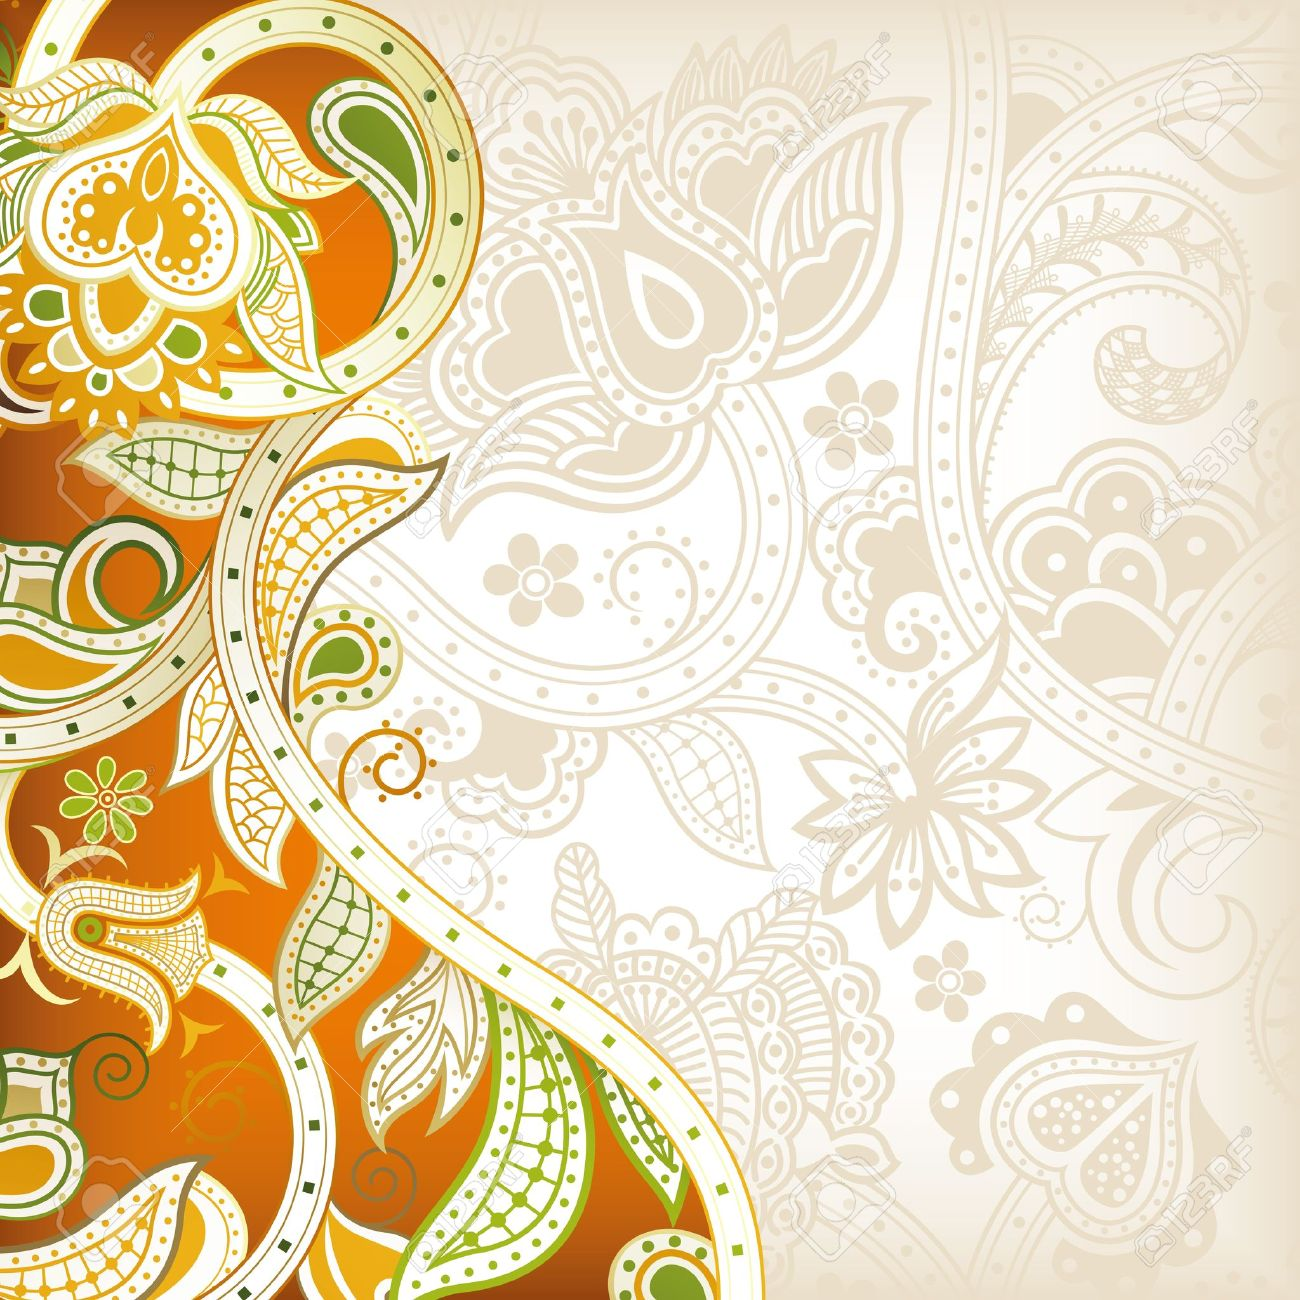 Abstract Orange Floral Background Royalty Free Cliparts, Vectors ...